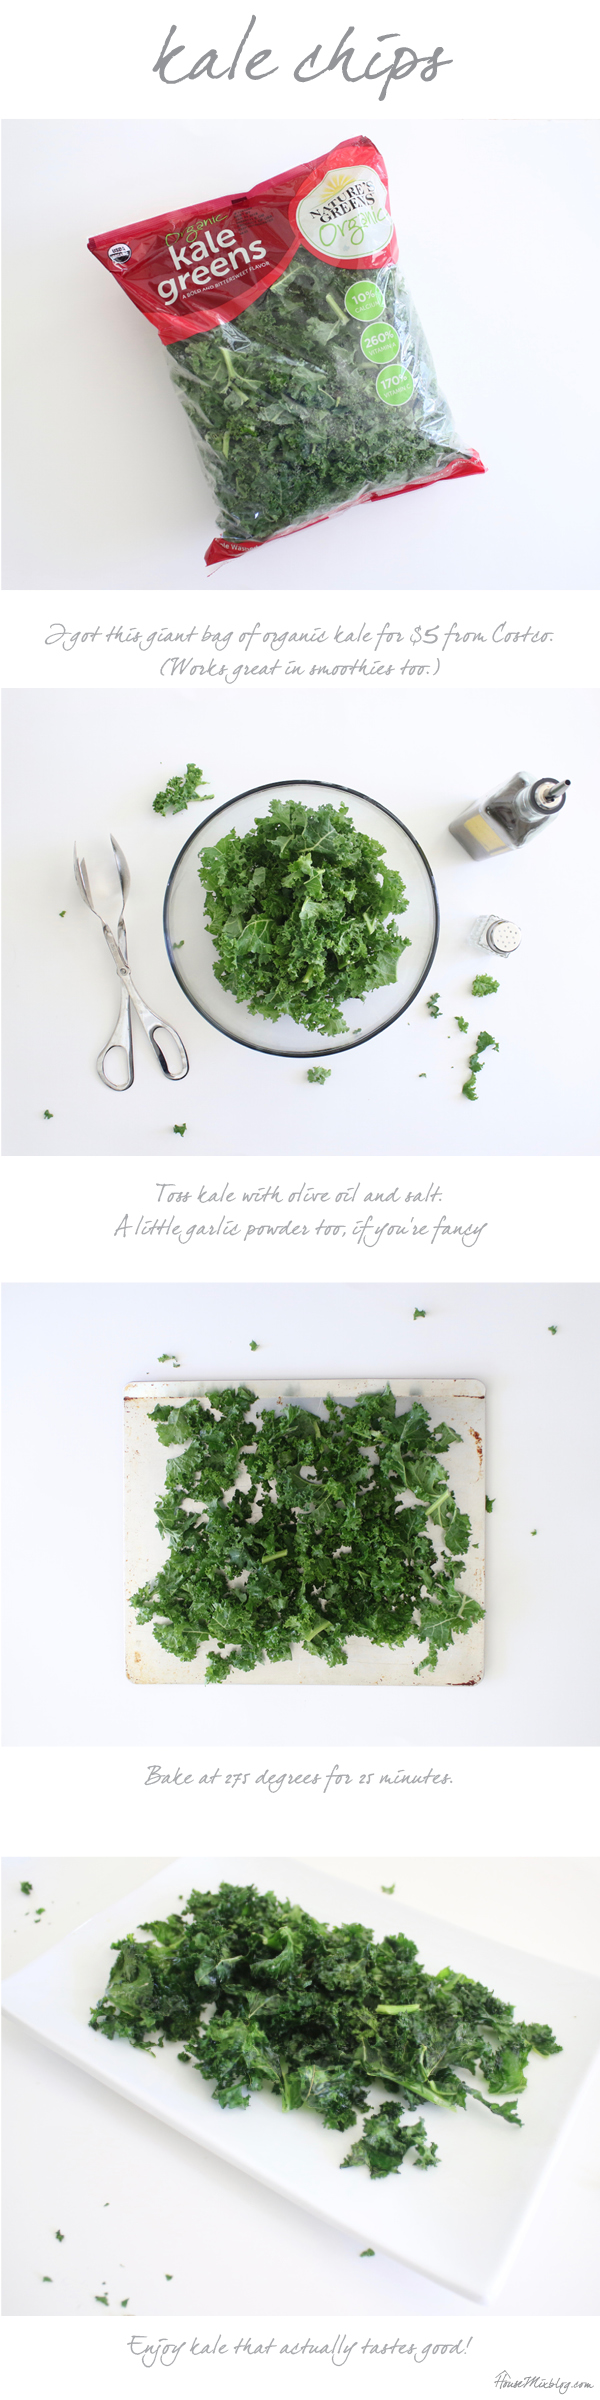 Easy kale chips recipe - healthy snack ideas